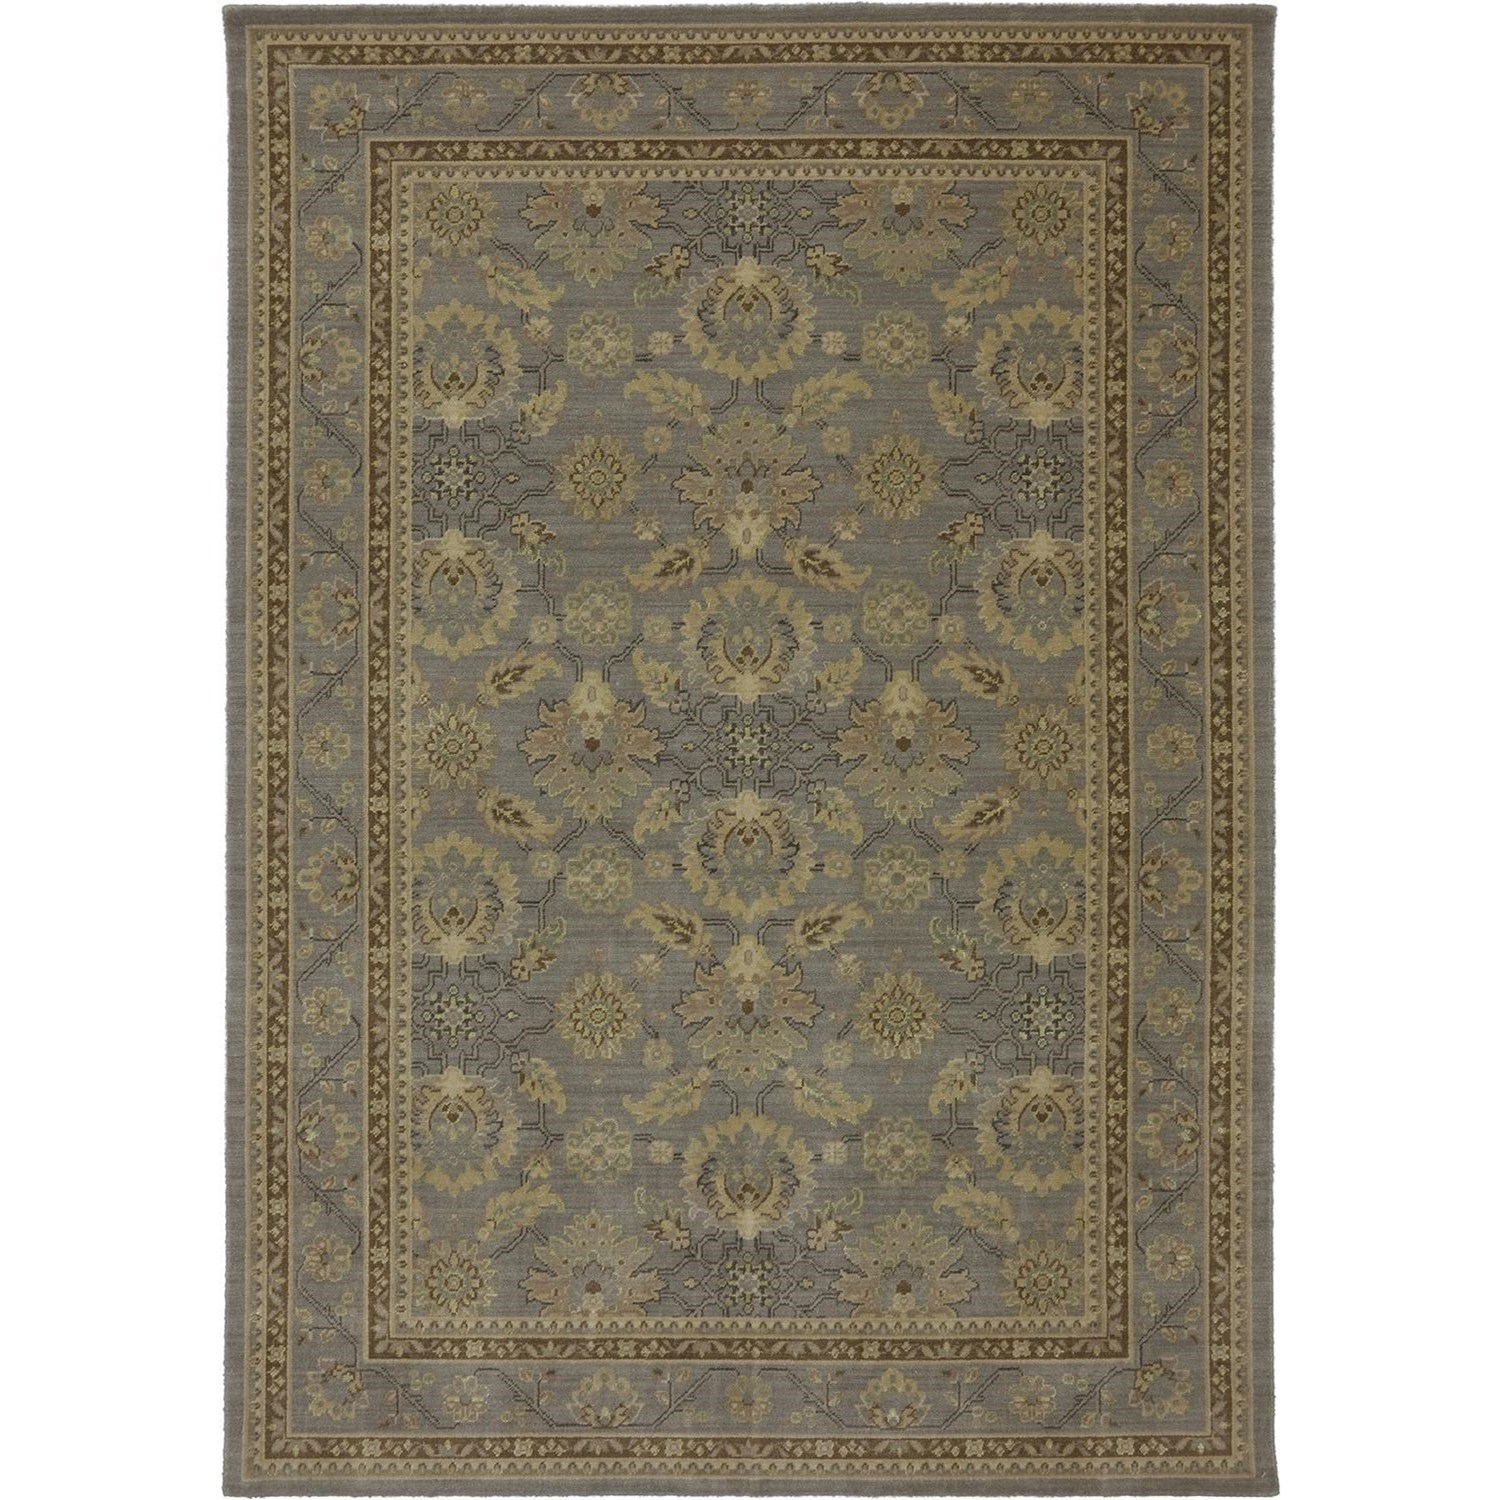 Karastan Rugs Evanescent 7'9x9'9 Pescara Gray Rug - Item Number: RG818 471 093117